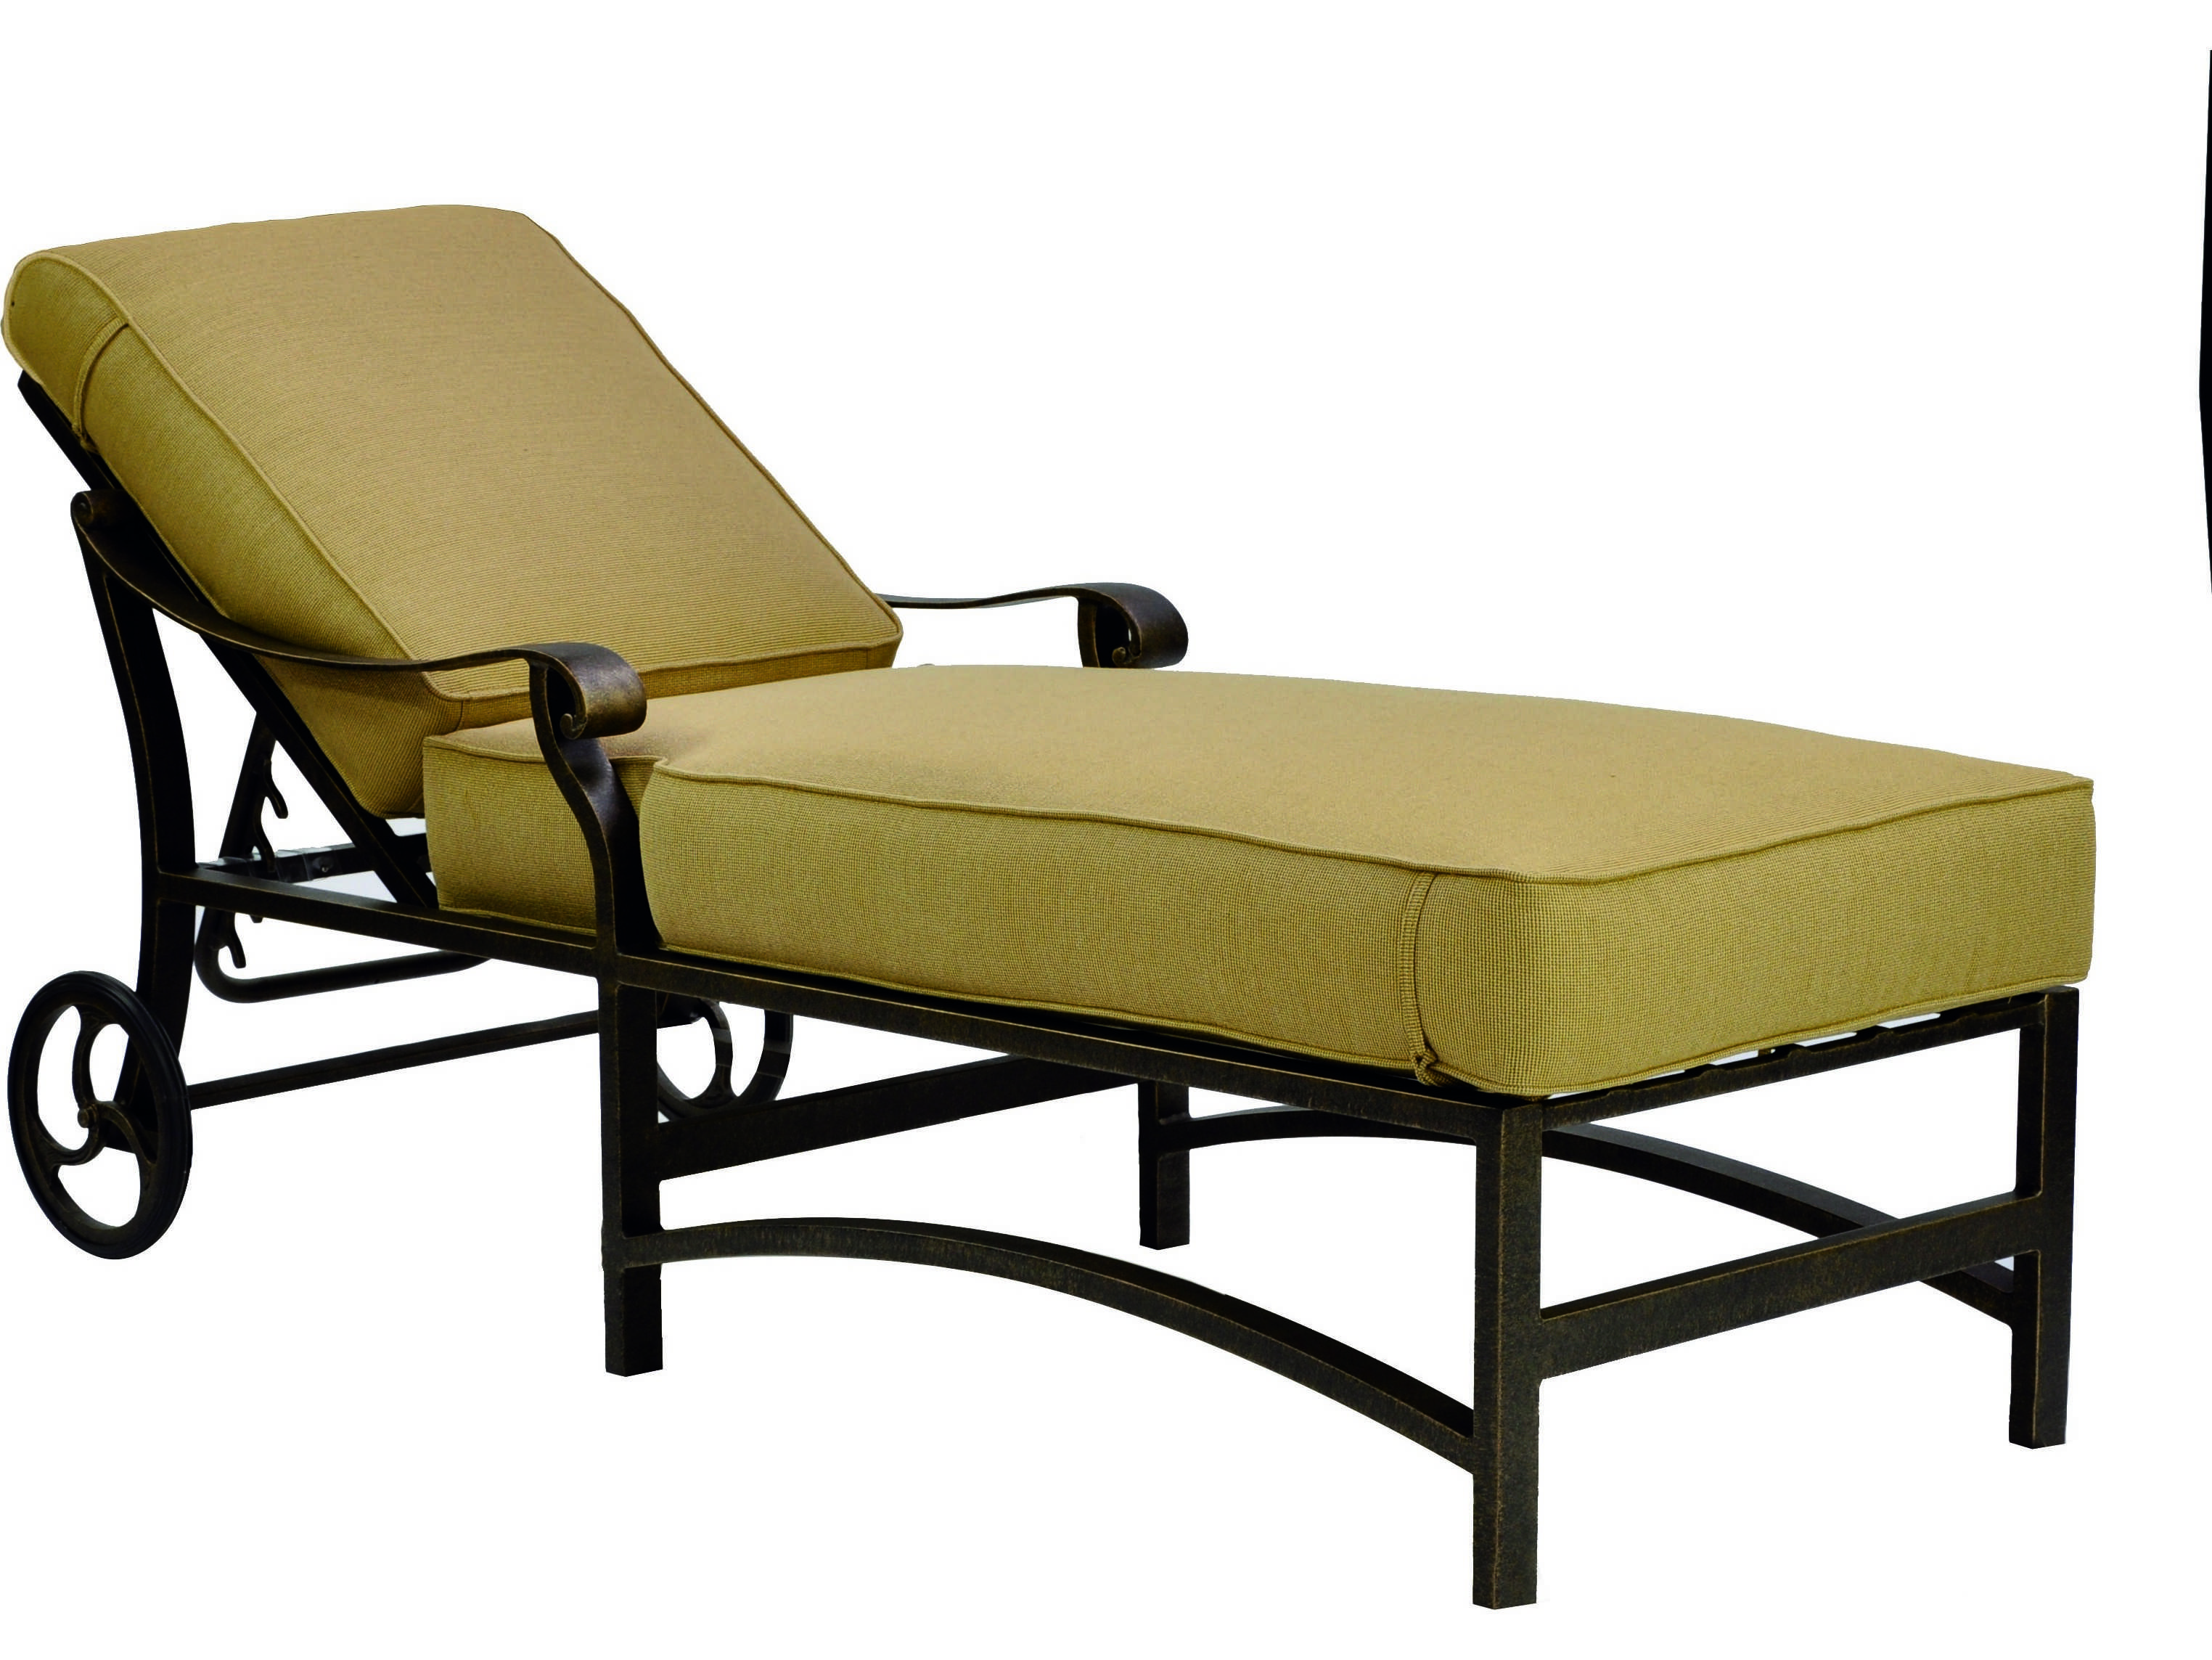 Castelle madrid cushion cast aluminum adjustable chaise for Cast aluminum chaise lounge